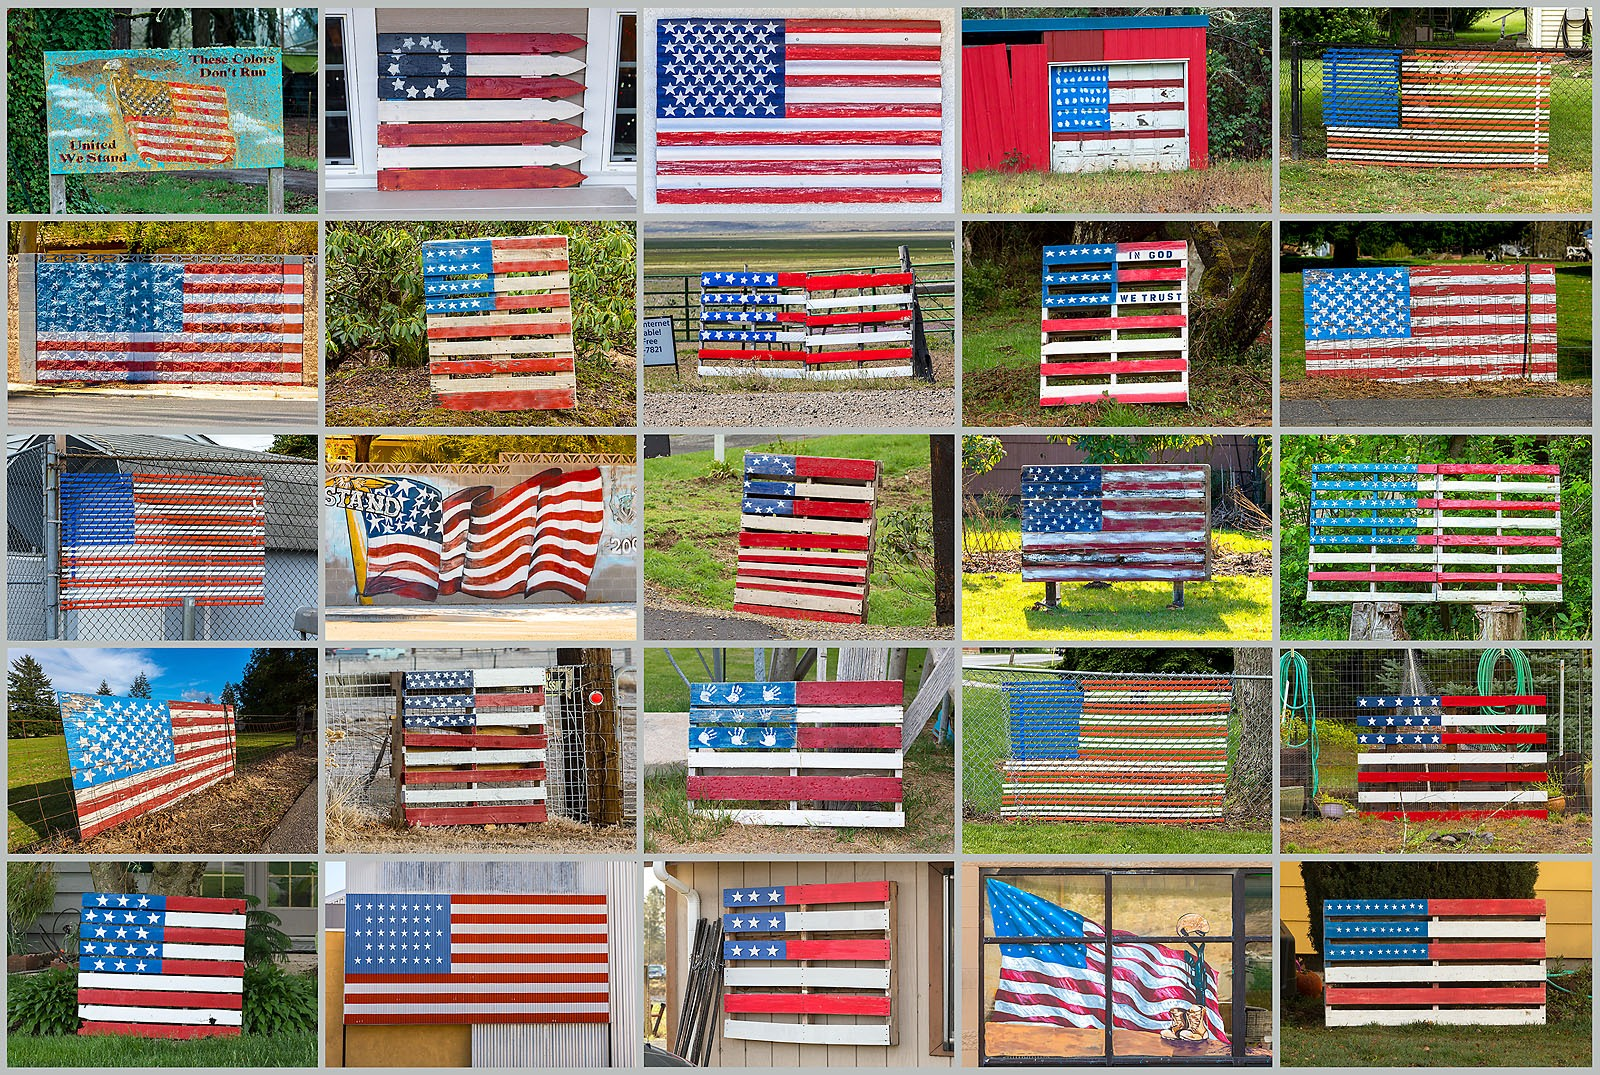 Flags_by_the_highway_5-x-5-version-